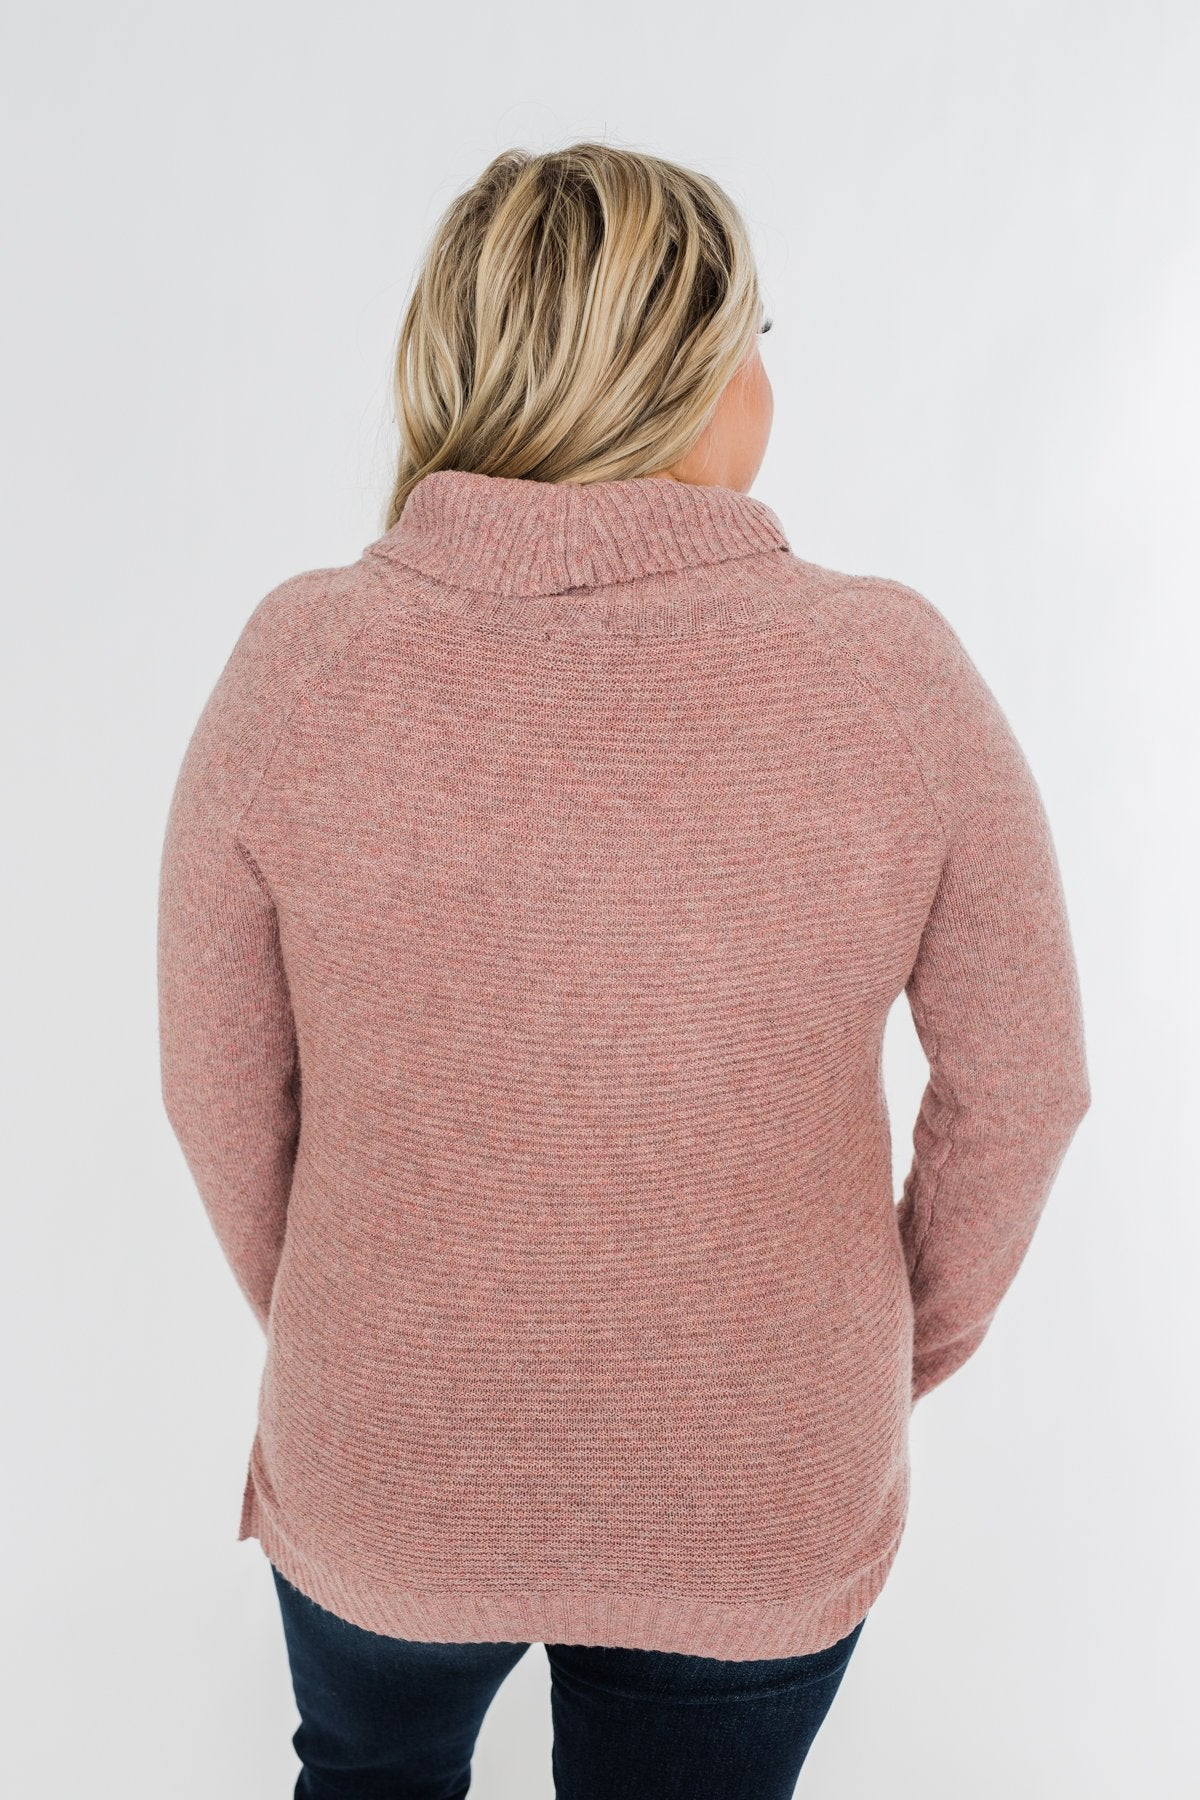 Oh Darling Cowl Neck Sweater- Dusty Mauve